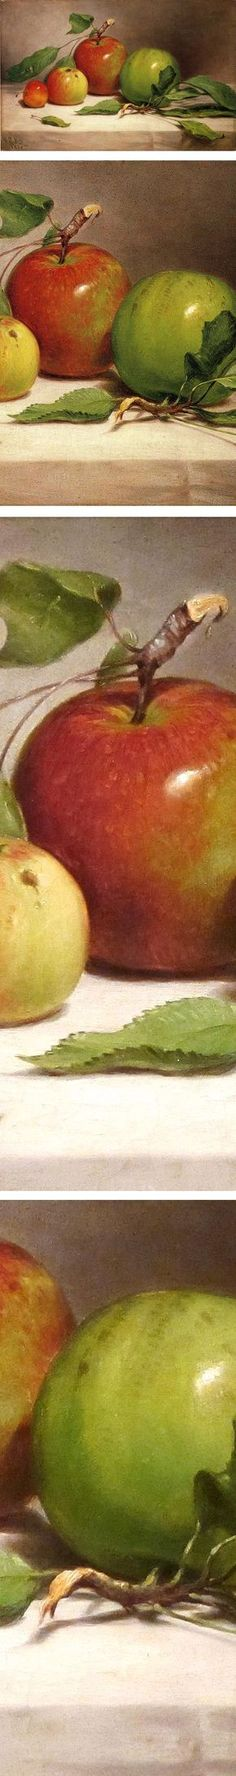 Still Life - Study of Apples, William Rickarby Miller: